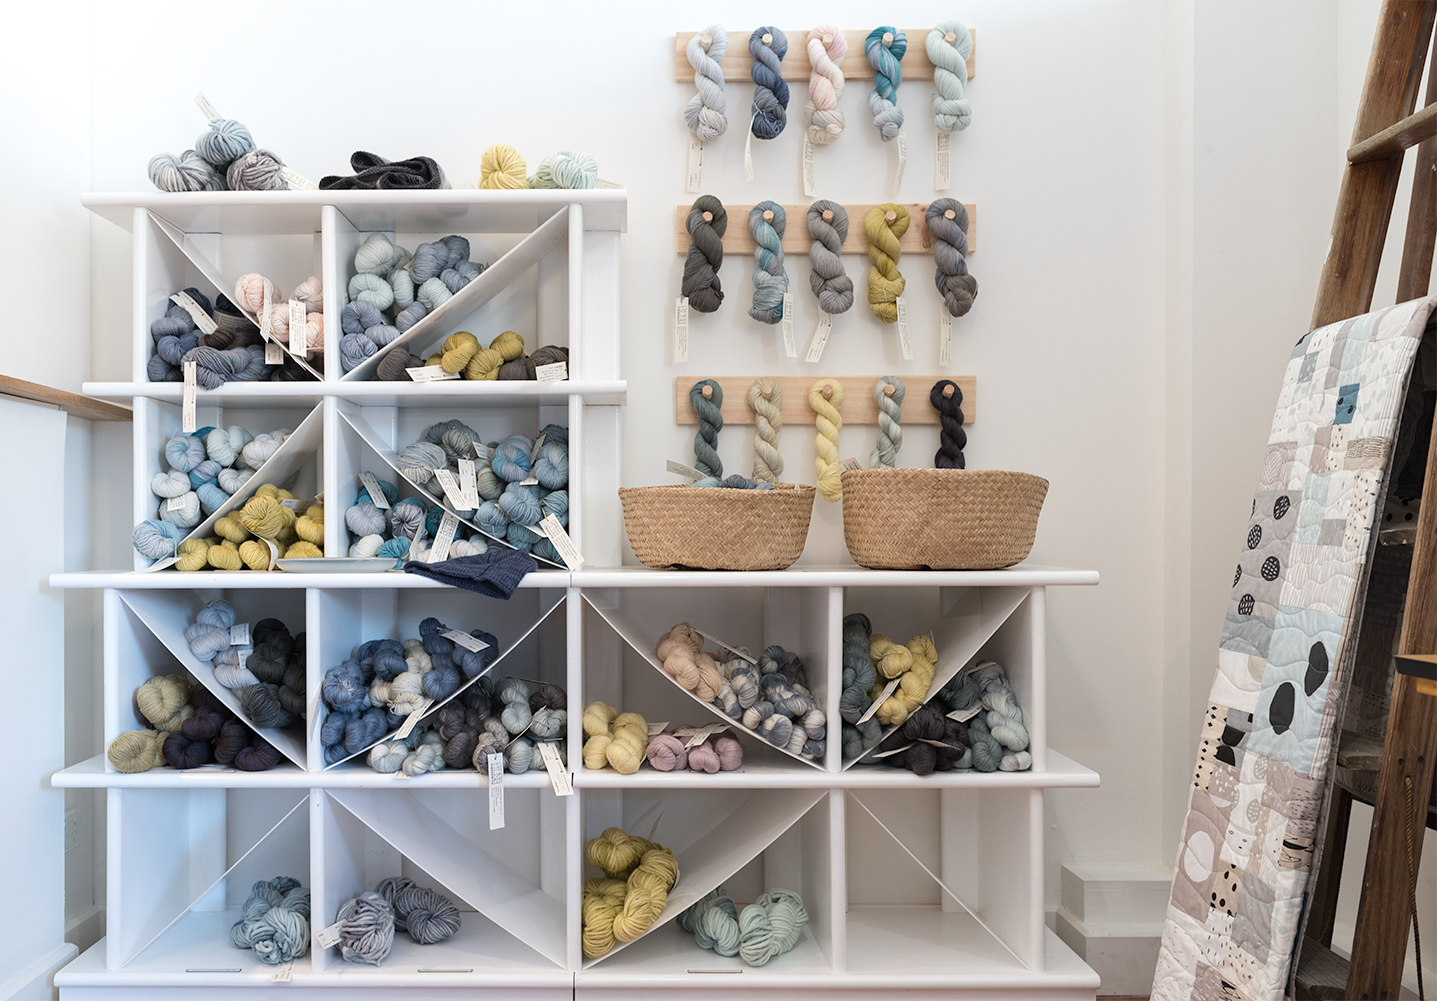 The whole Fibresmith yarn range. Photo by Susan Fitzgerald.